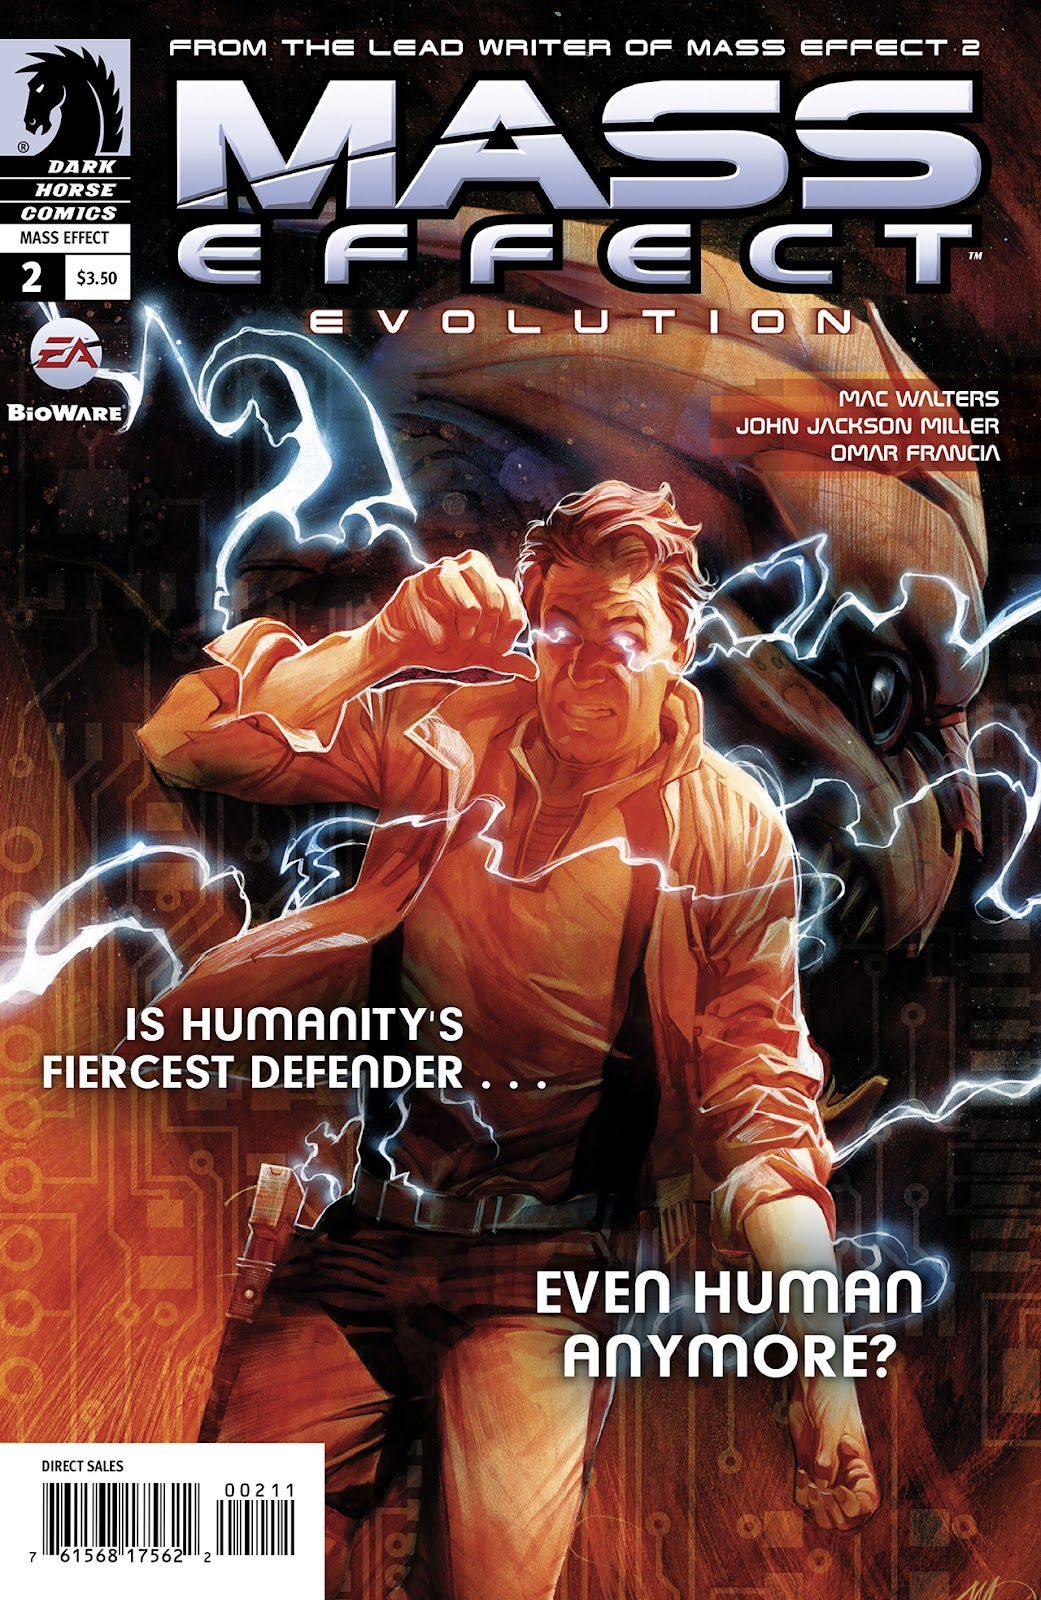 Mass effect evolution issue 2 page 1